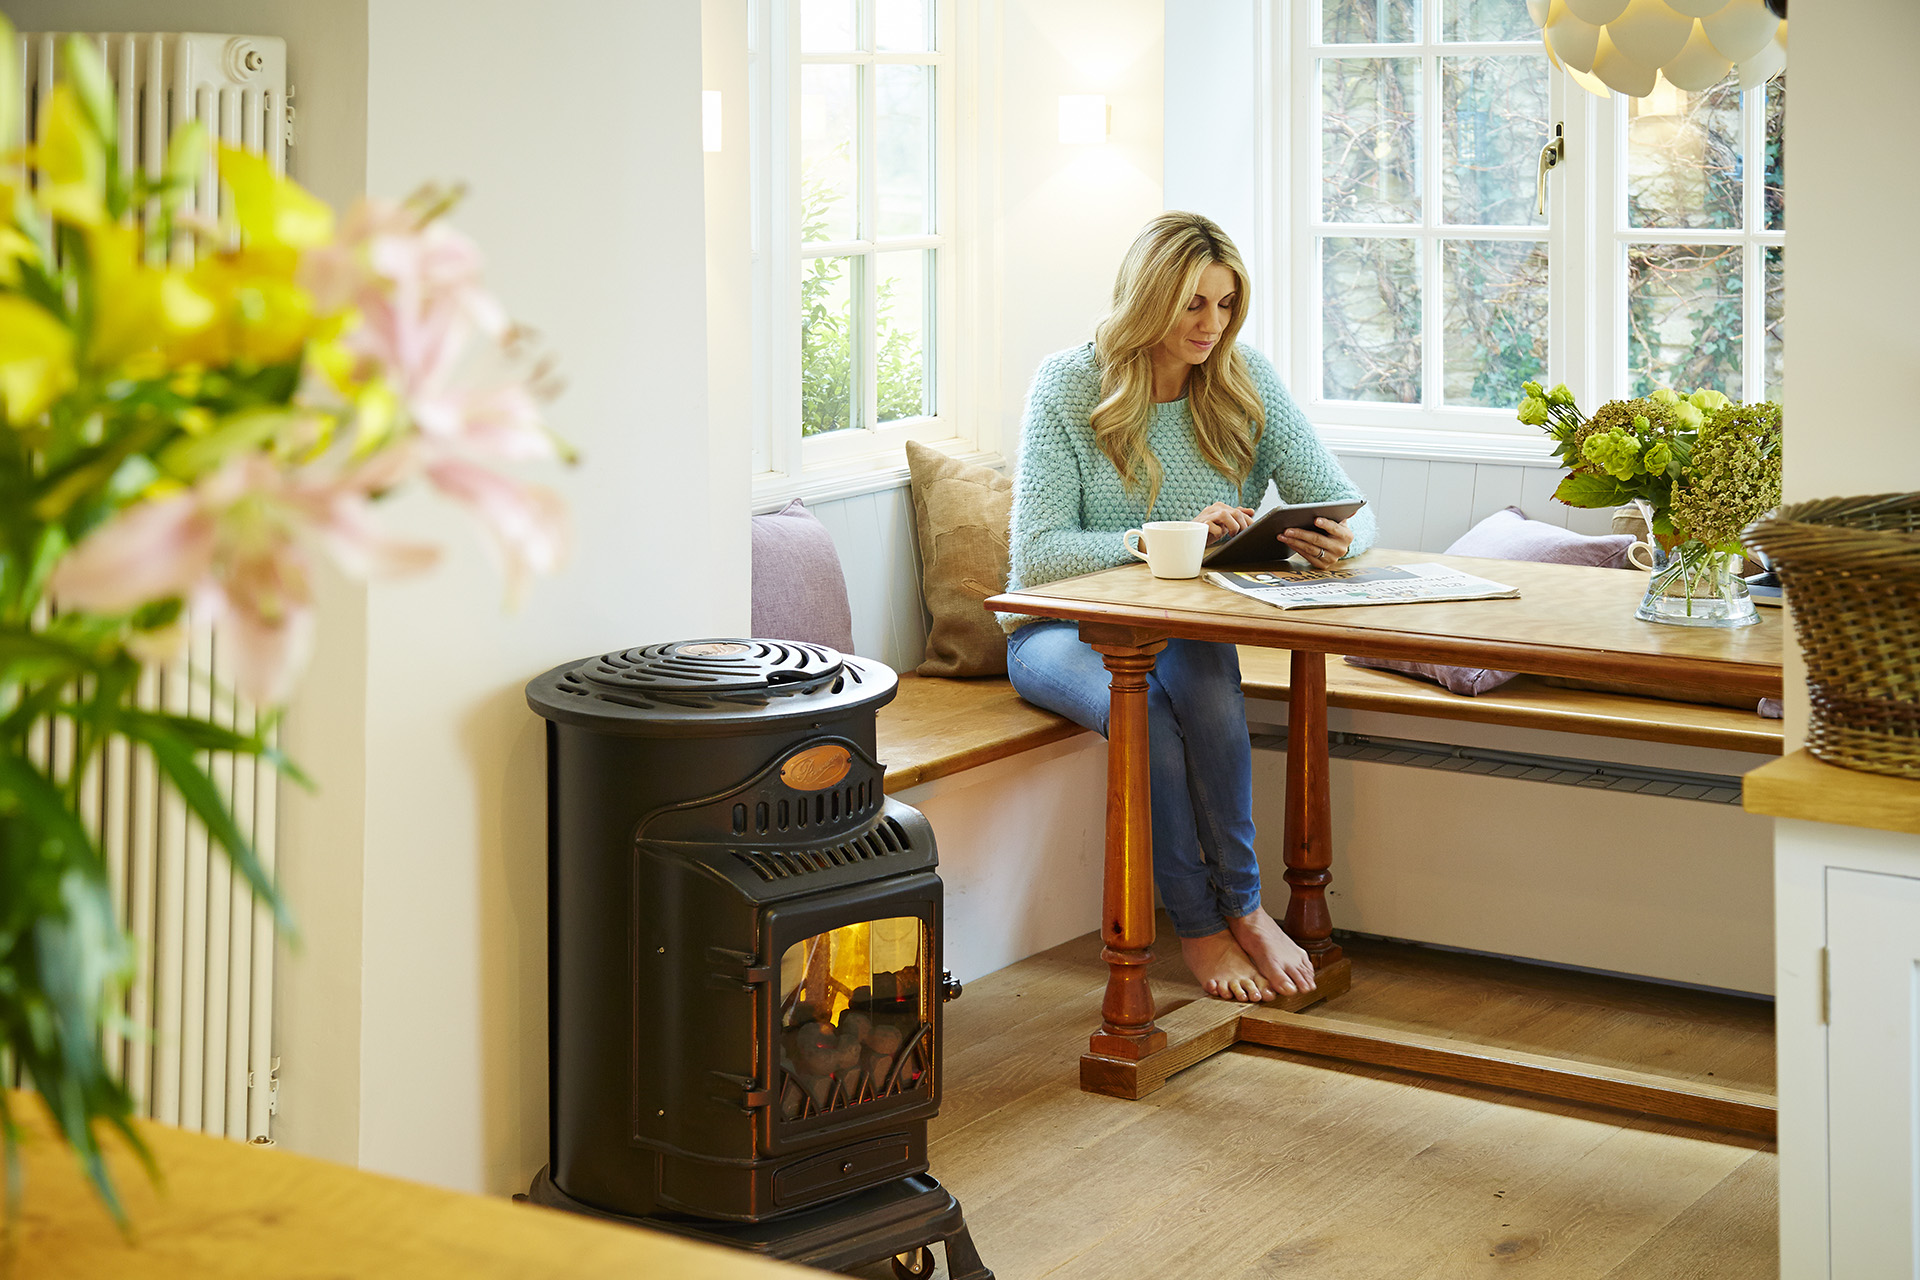 A lady in her kitchen with a Calor portable gas heater